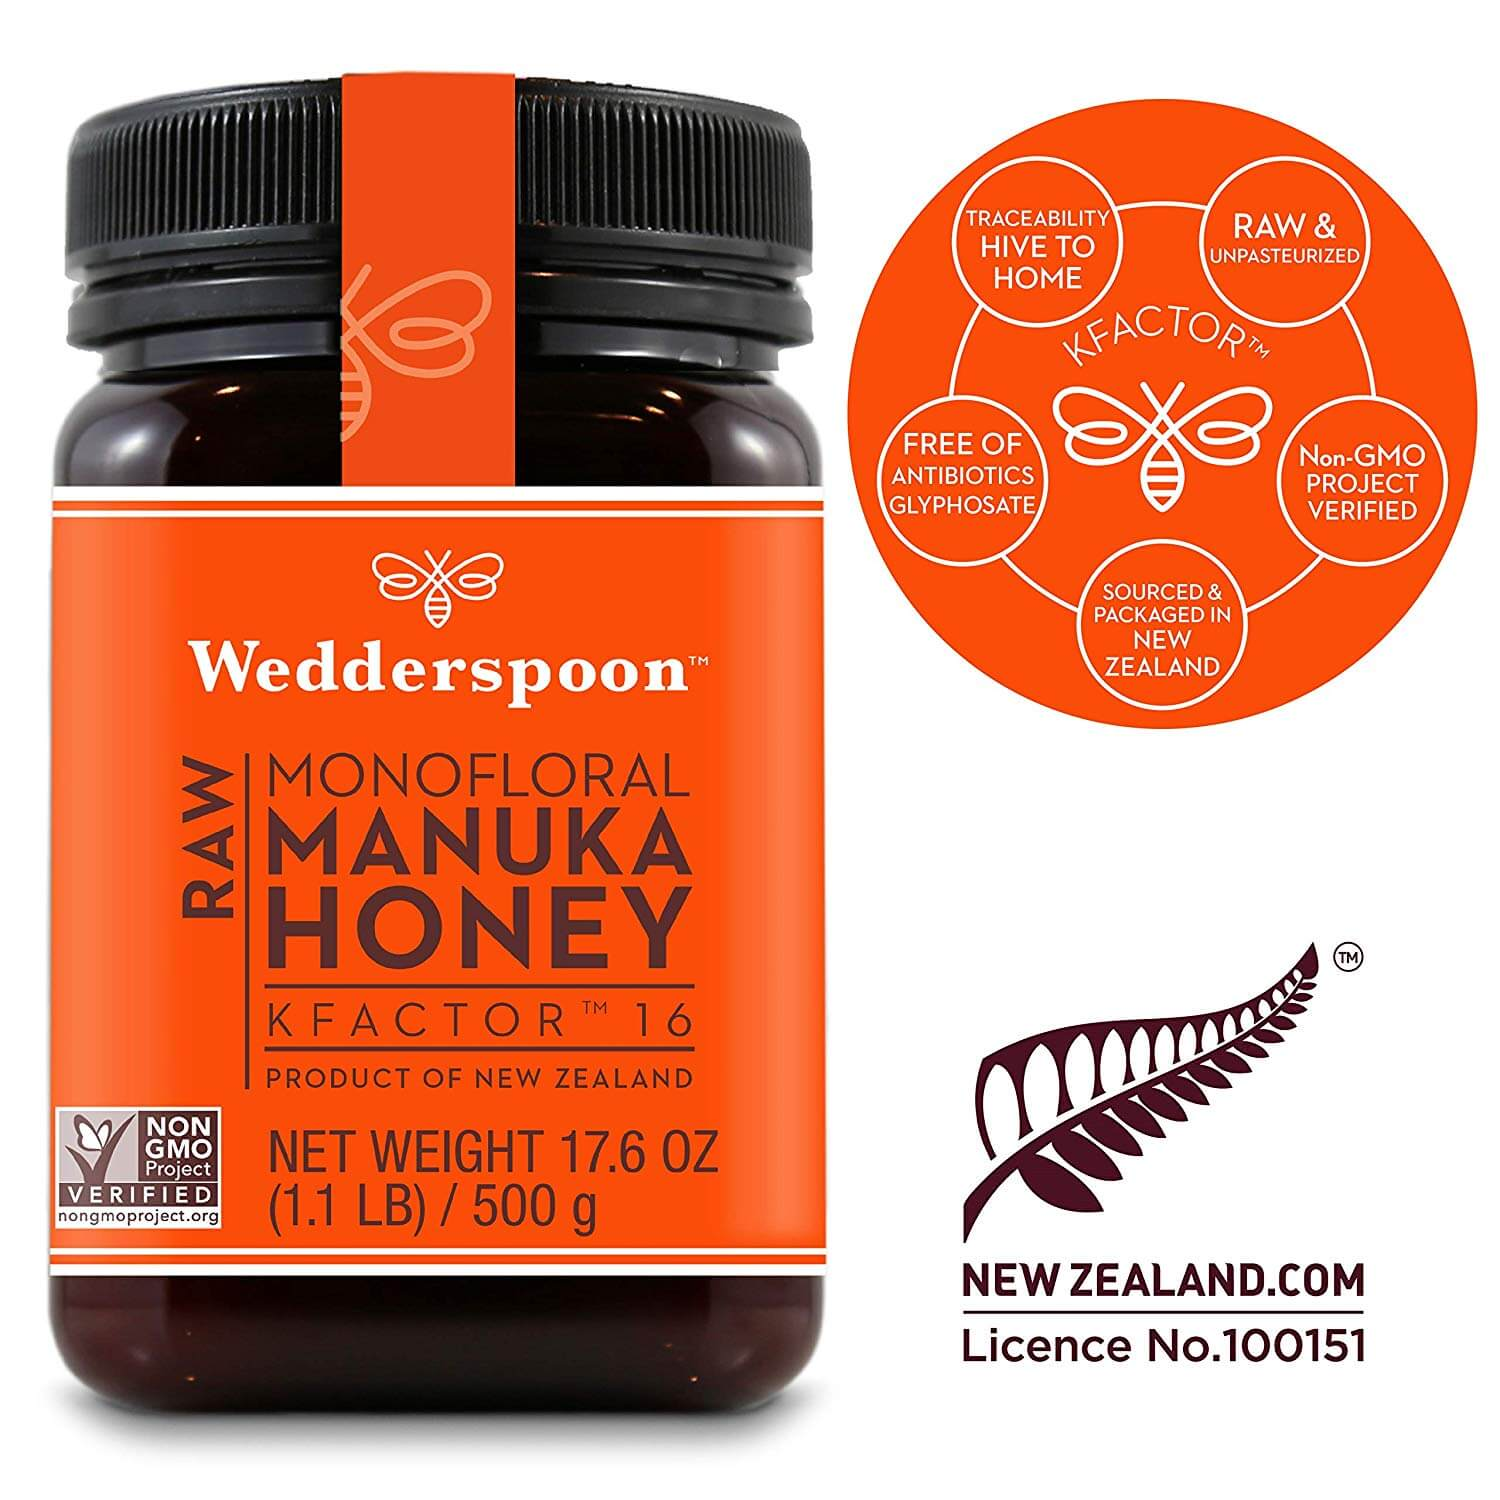 Manuka Honey as a recommended product to get glowing skin